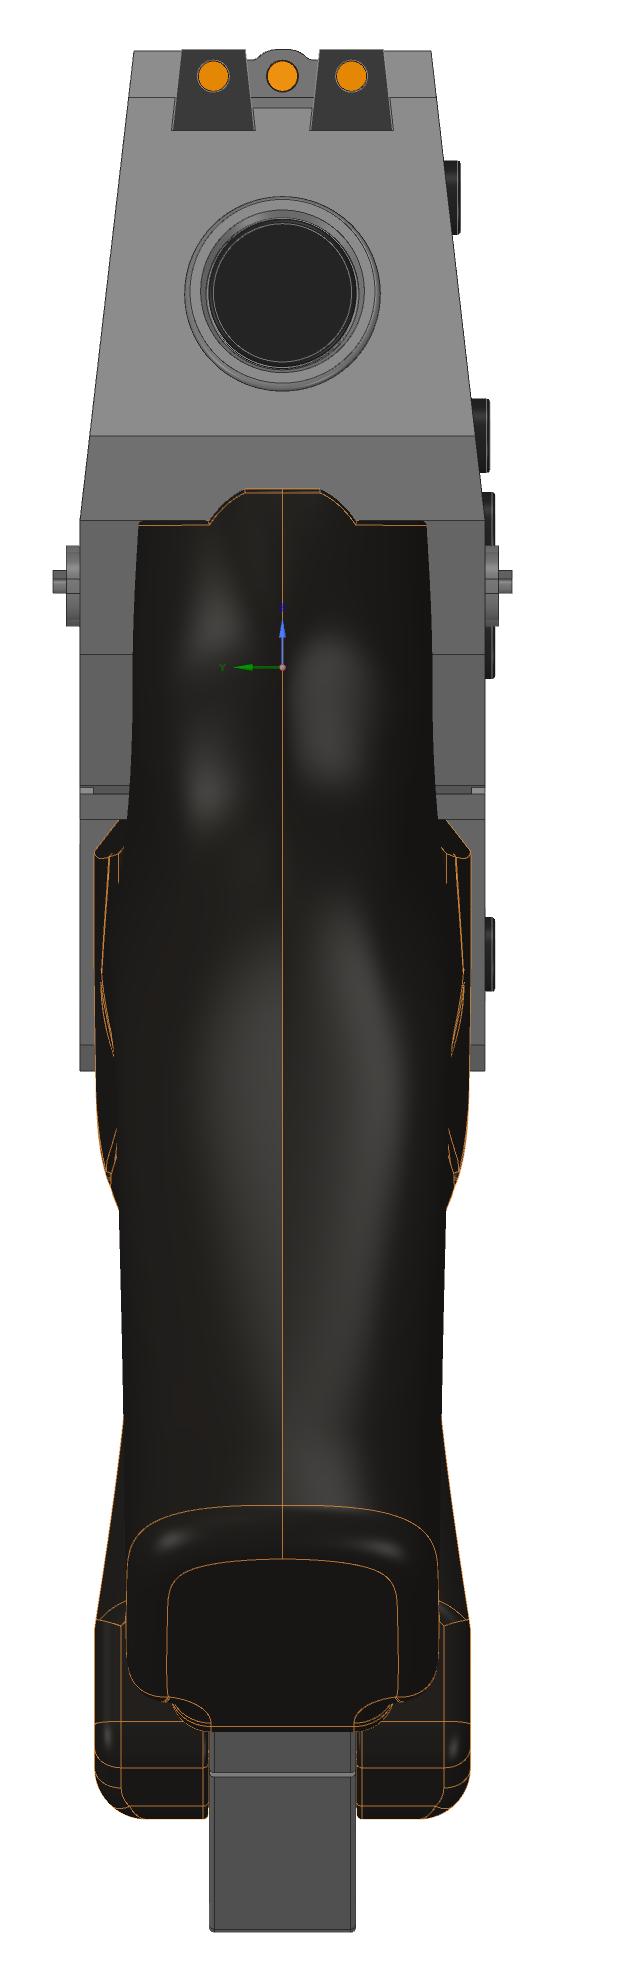 Carnifex wip iron sights rear view.png